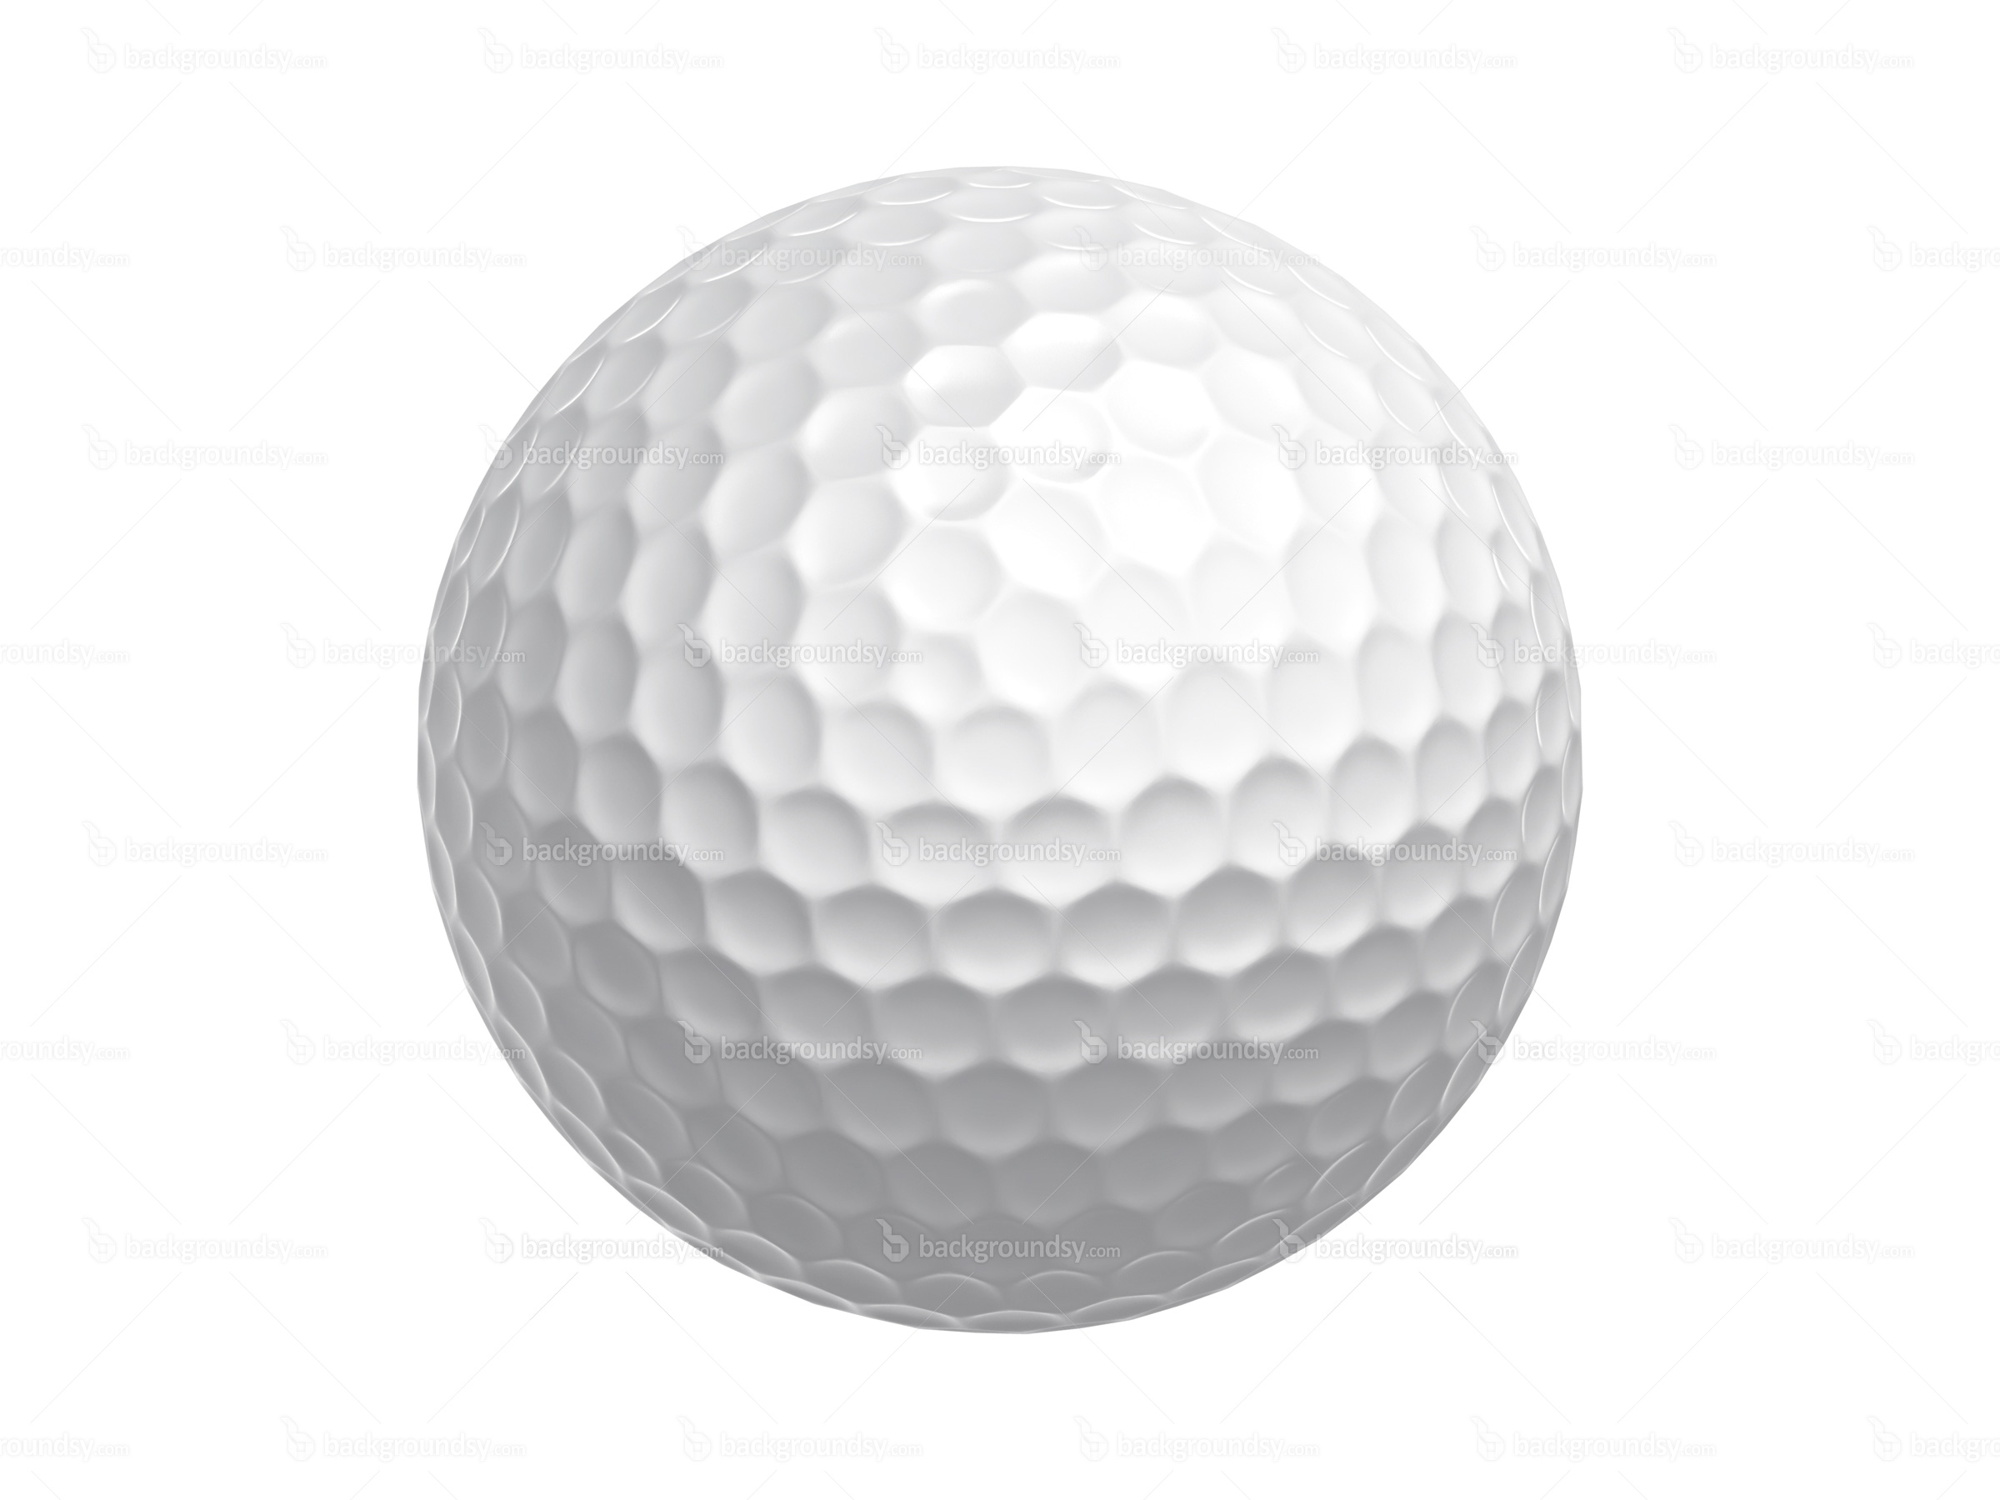 Terms Of Use >> Golf ball | Backgroundsy.com